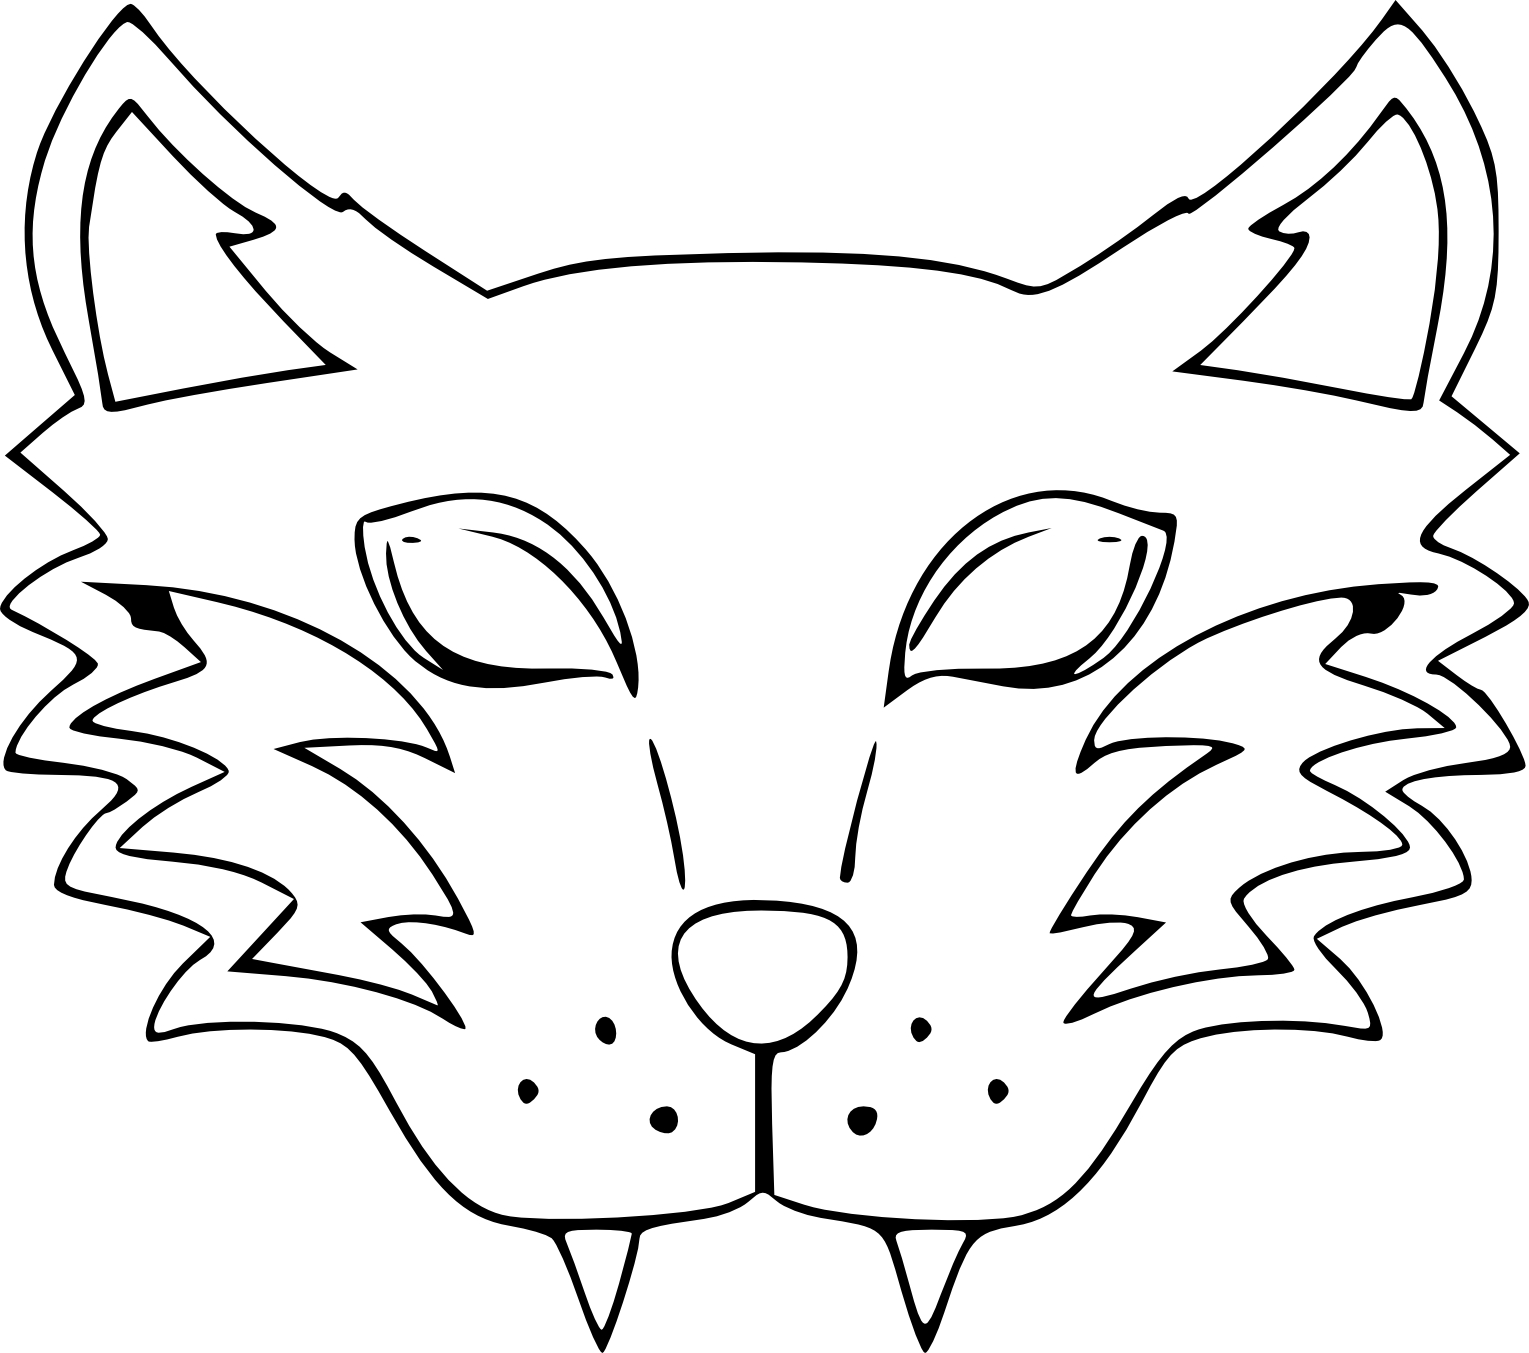 Unique dessin a colorier de loup garou - Coloriage masque ...